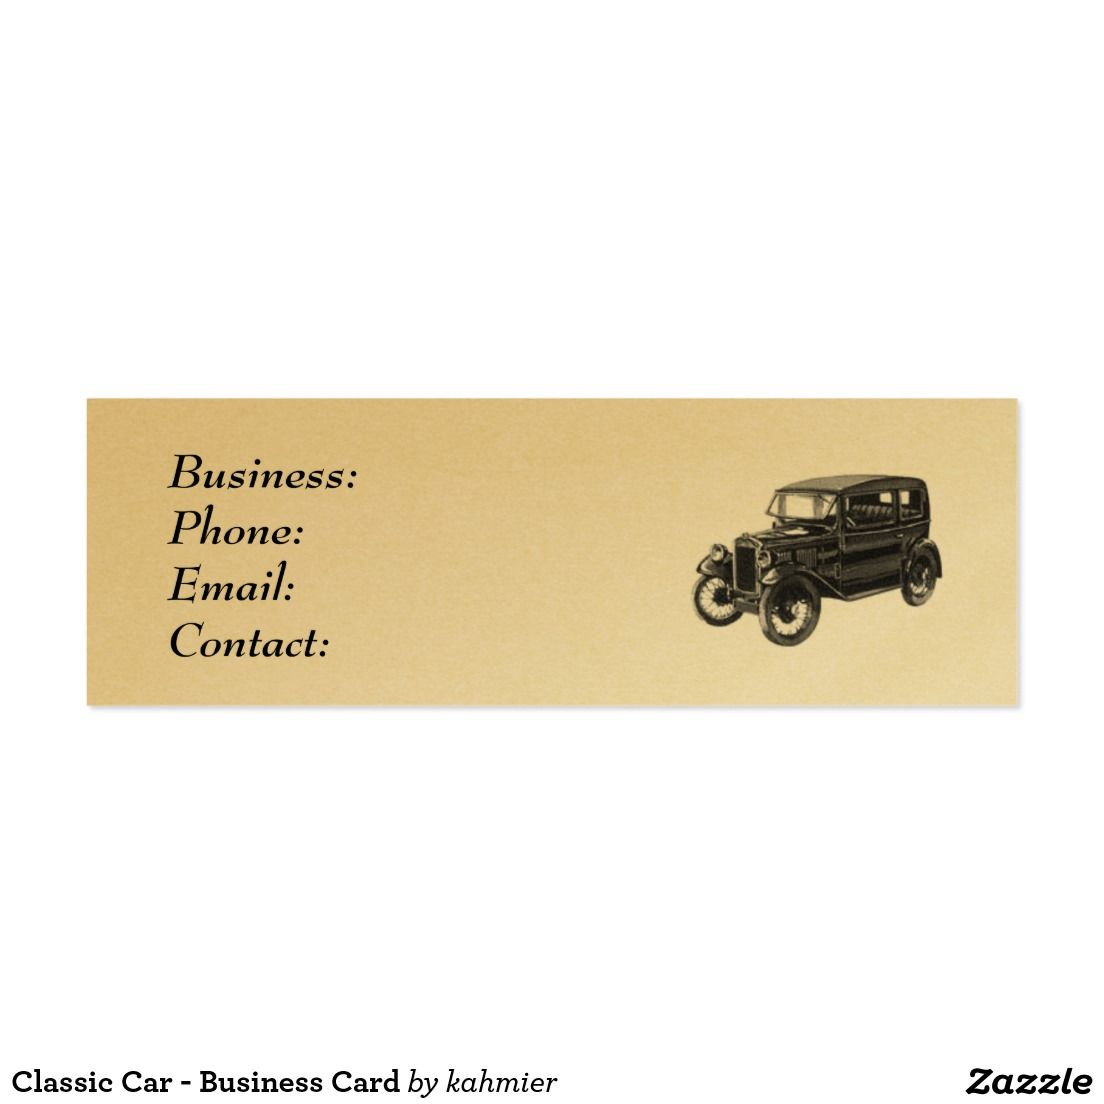 Classic Car - Business Card | Business cards and Business